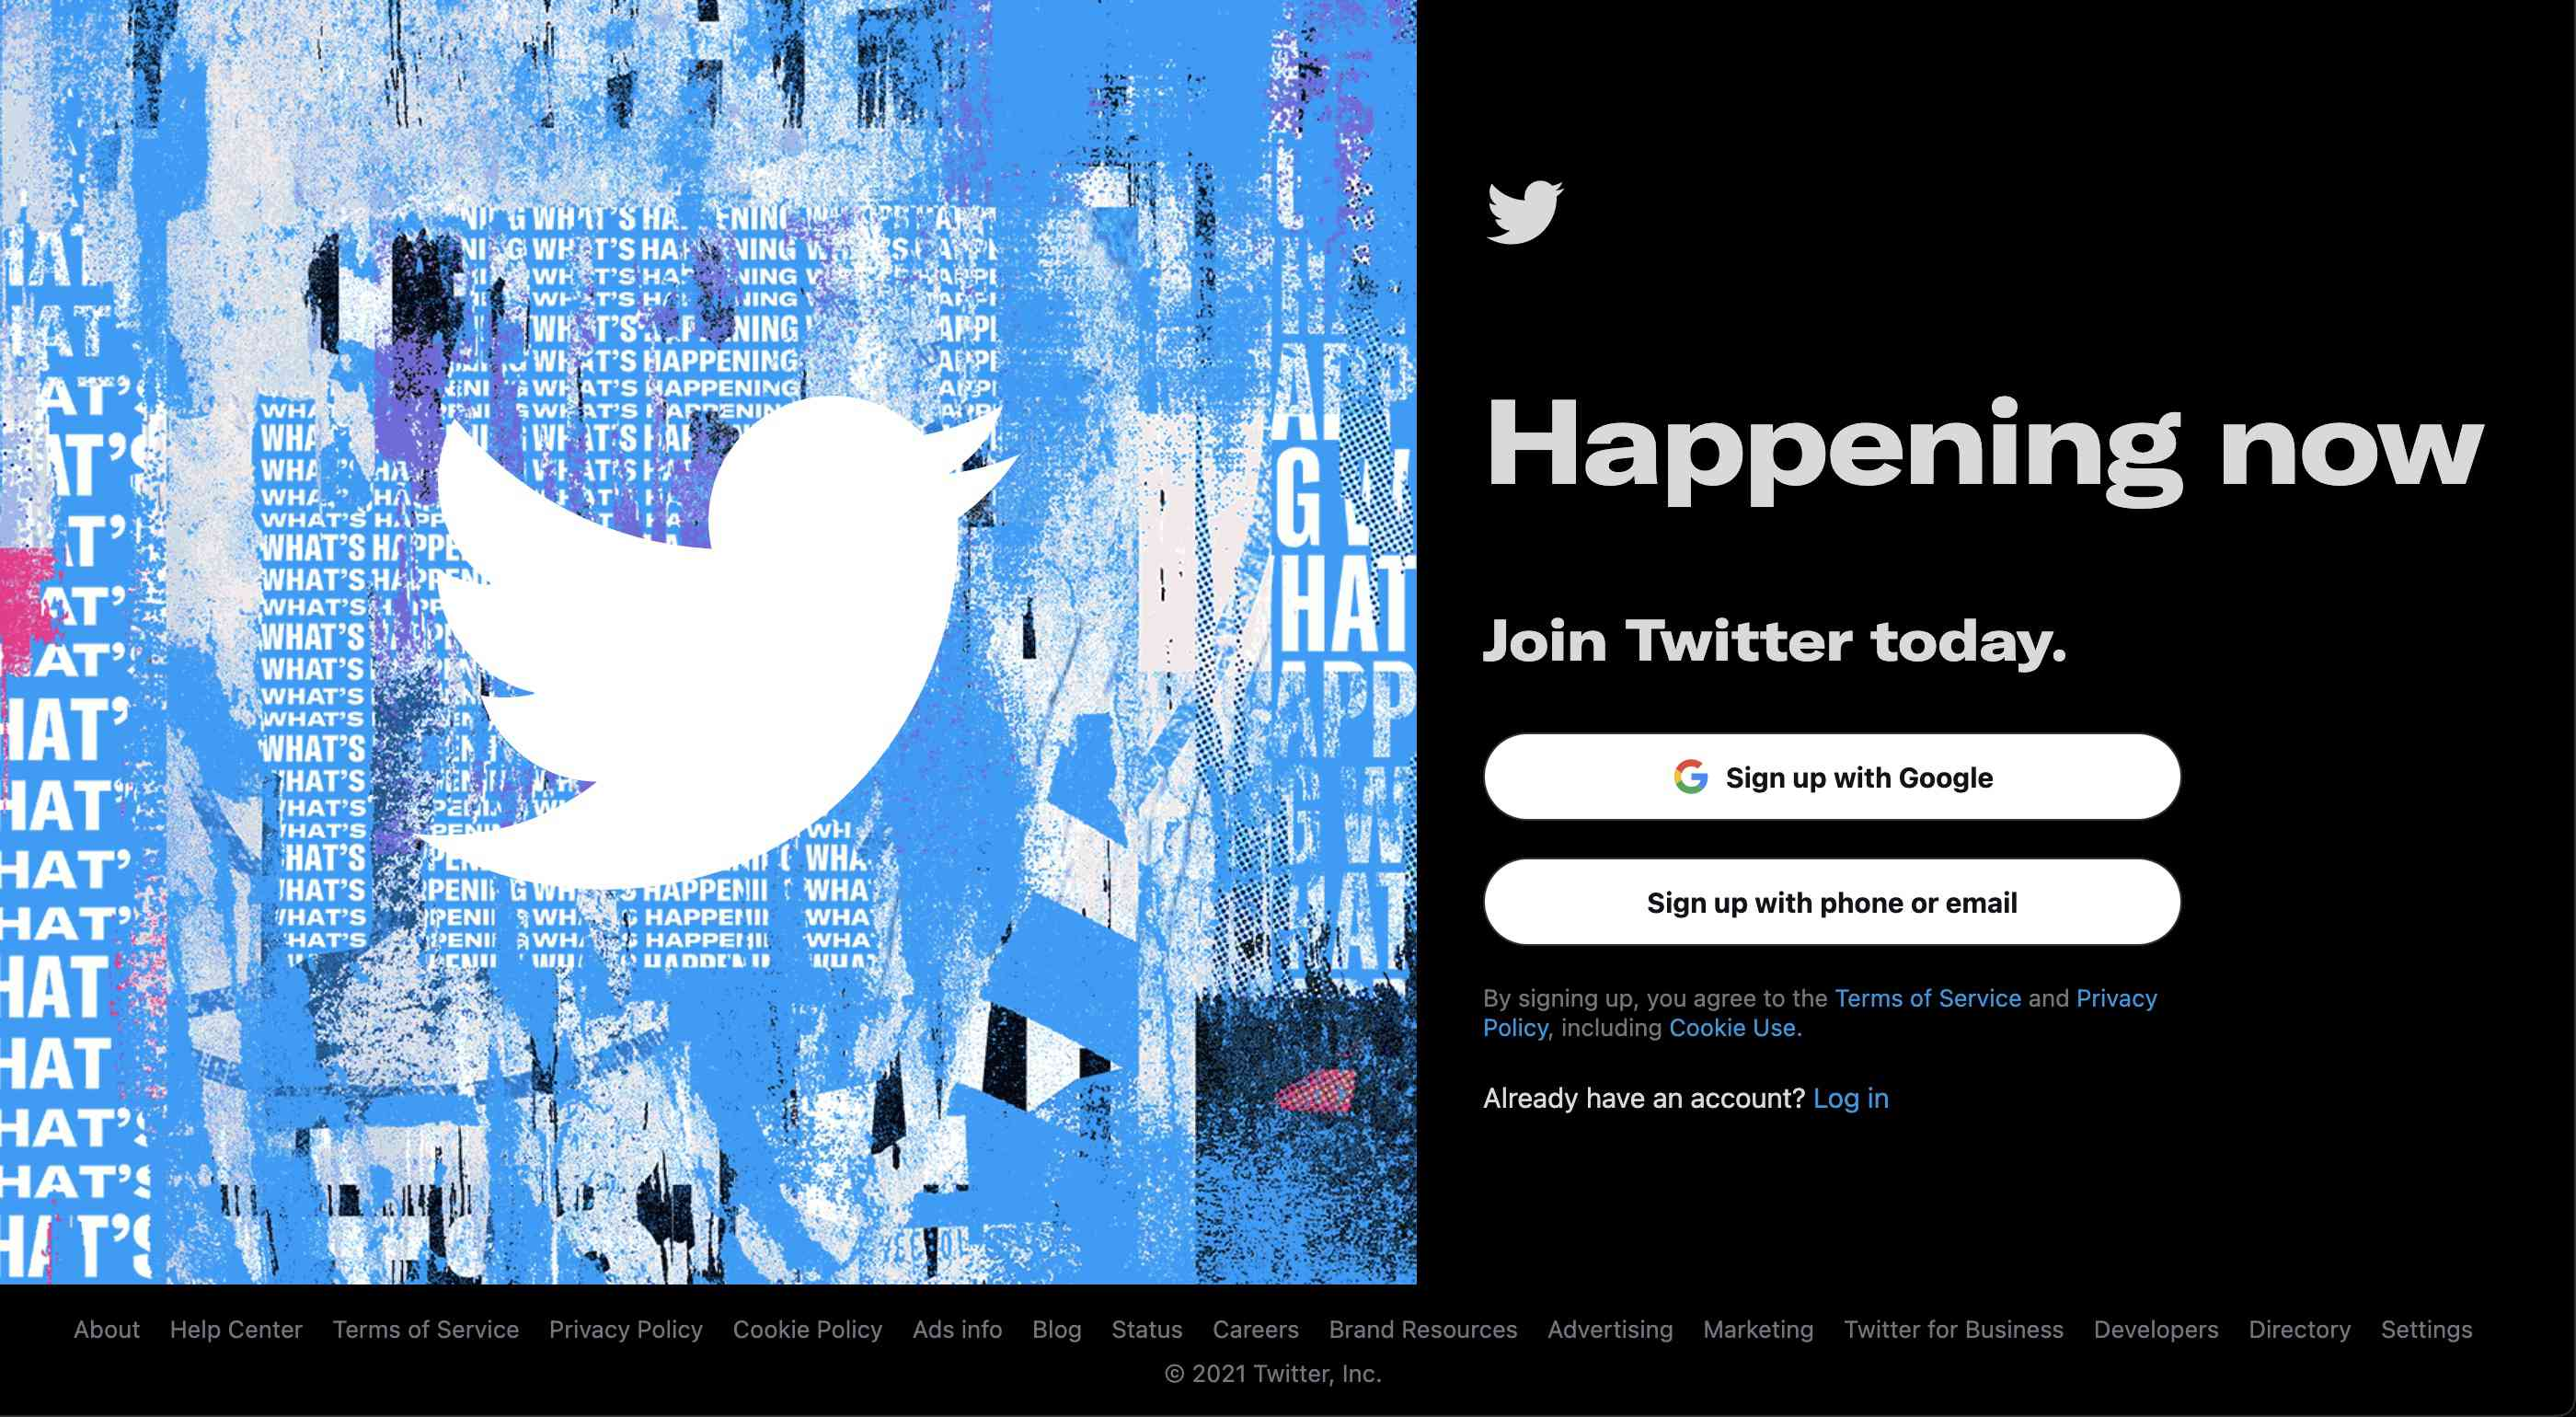 The Twitter sign-up page